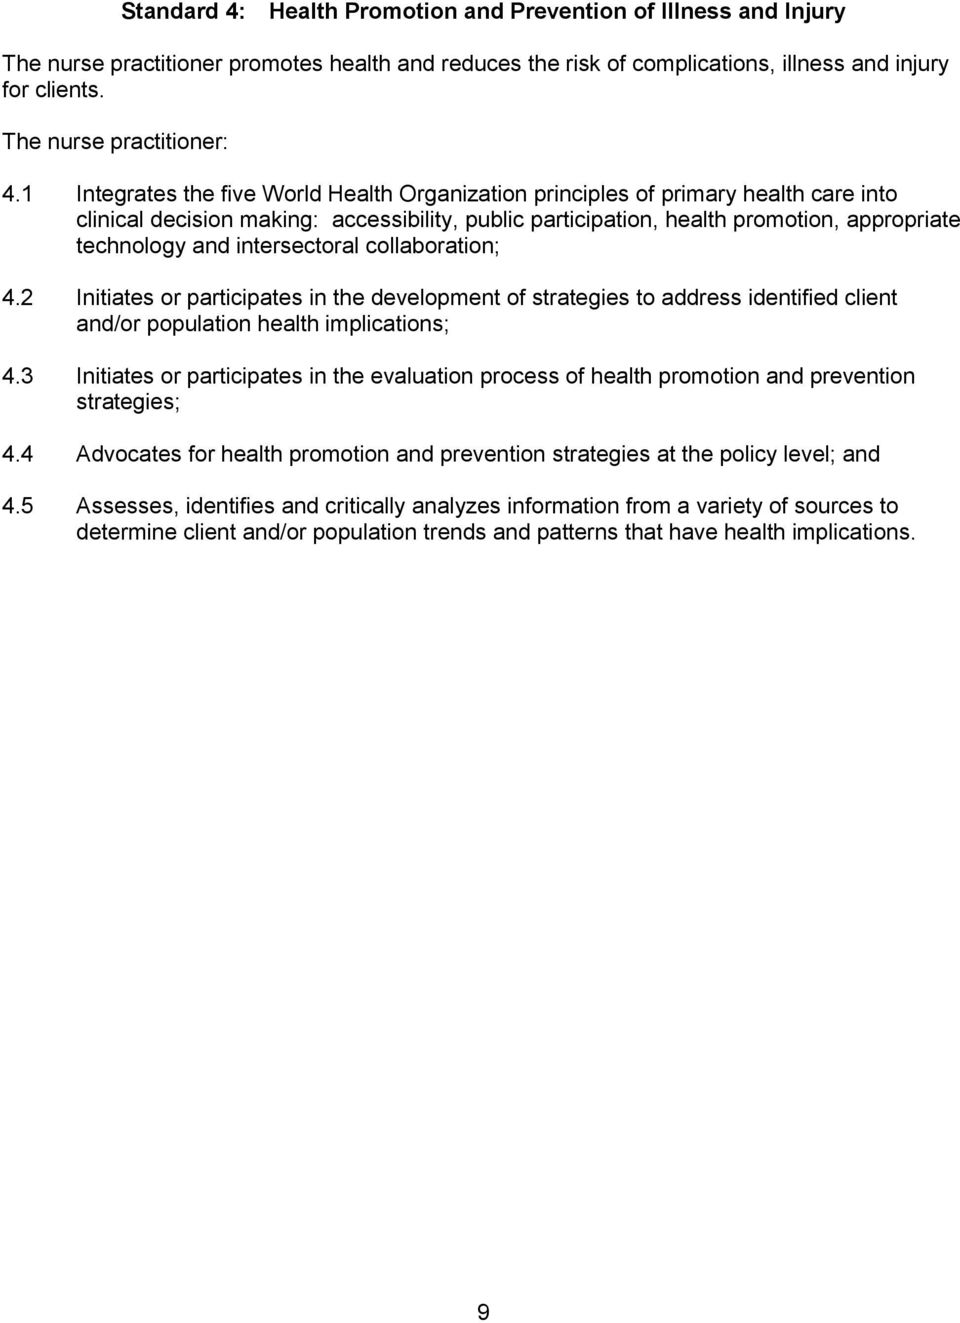 1 Integrates the five World Health Organization principles of primary health care into clinical decision making: accessibility, public participation, health promotion, appropriate technology and